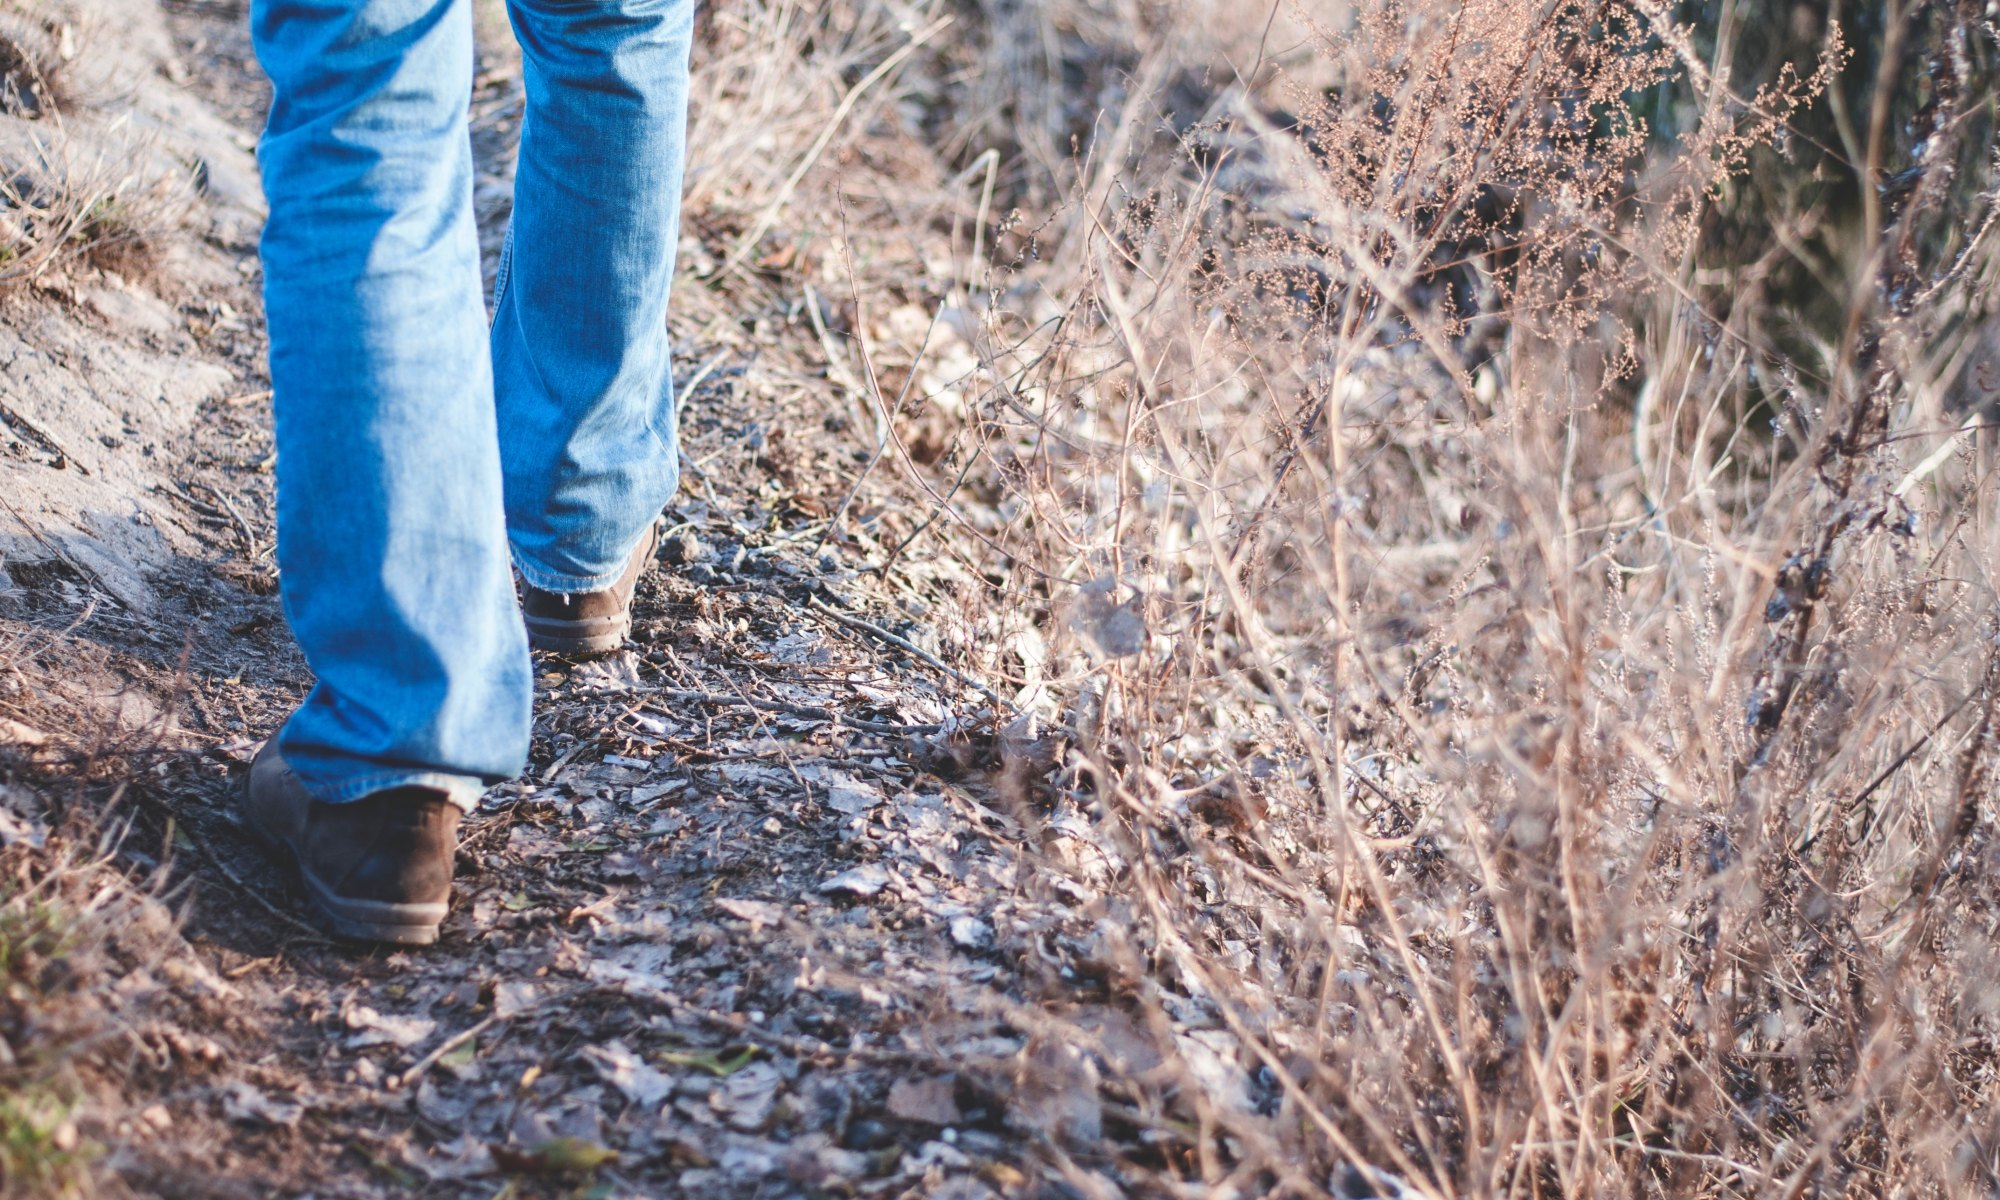 Man walking on trail